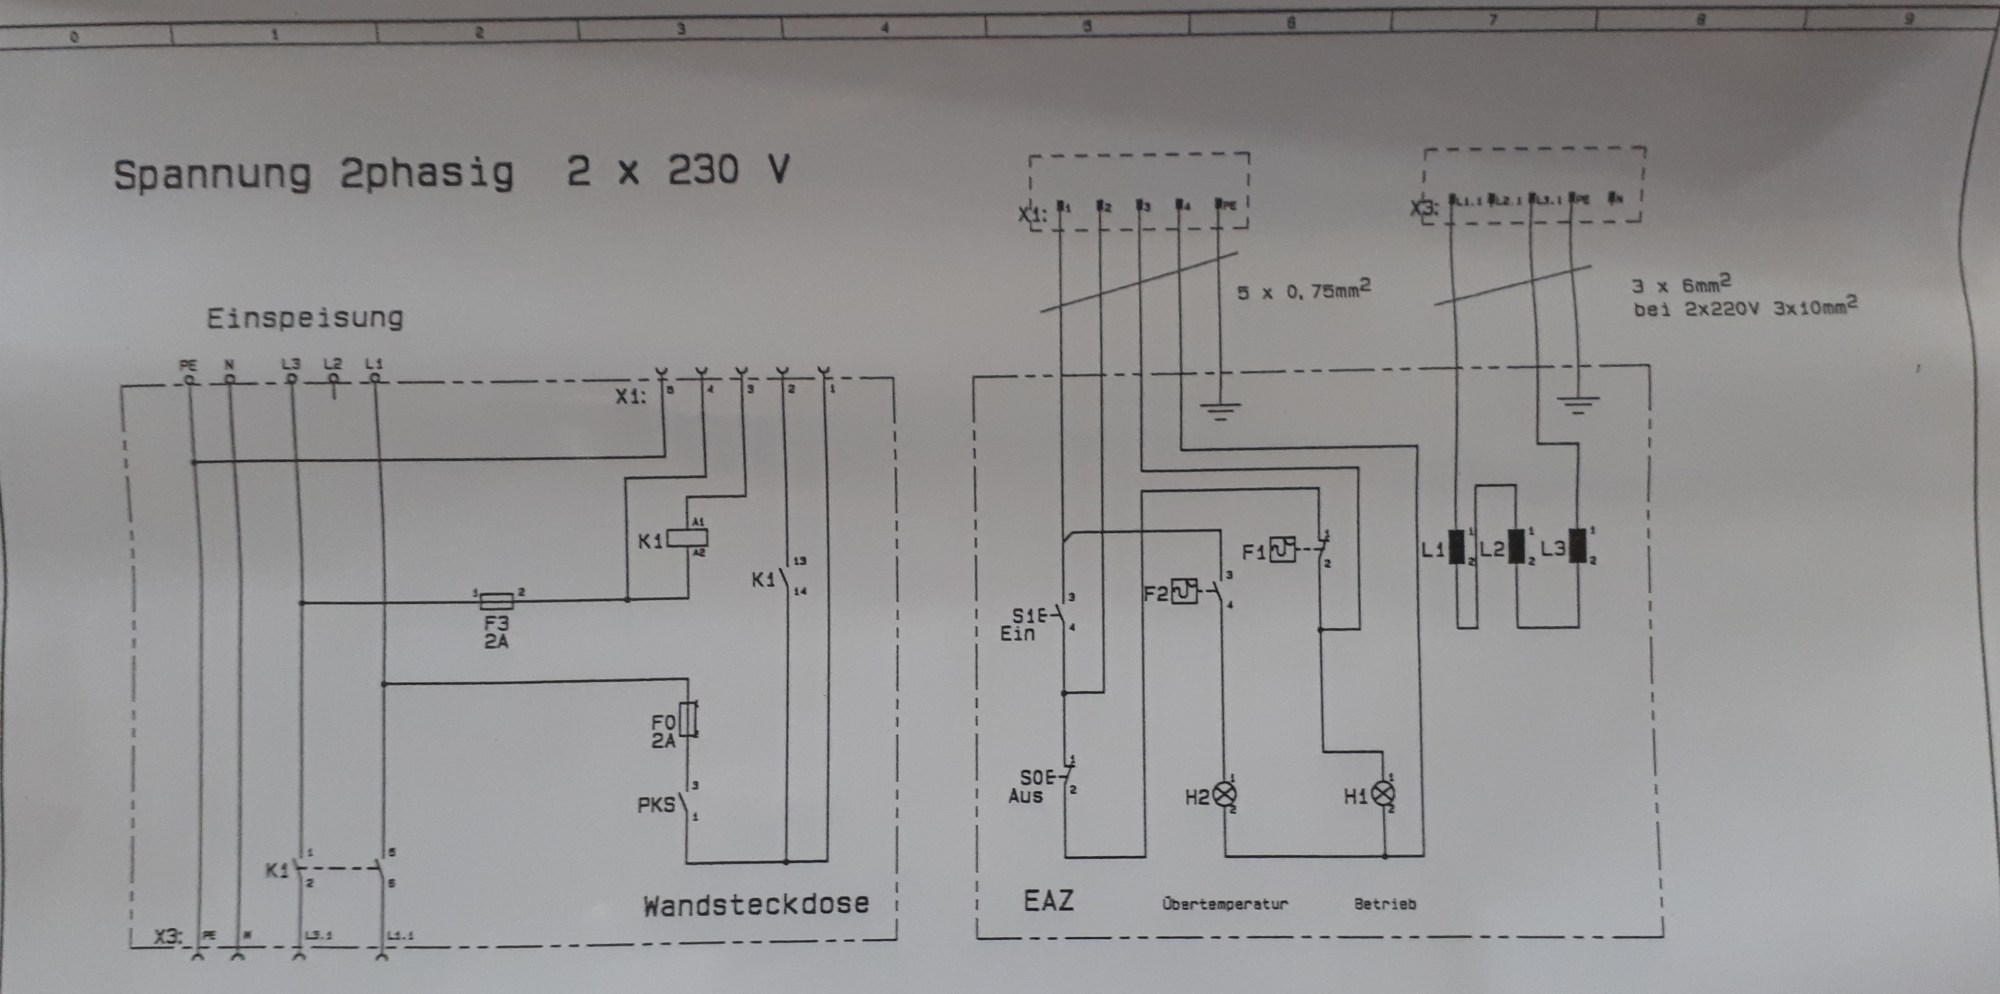 hight resolution of 3 phase 220 volt plug wiring wiring diagram used 480 volt 3 phase transformer wiring diagram 480 volt 3 phase wiring diagram